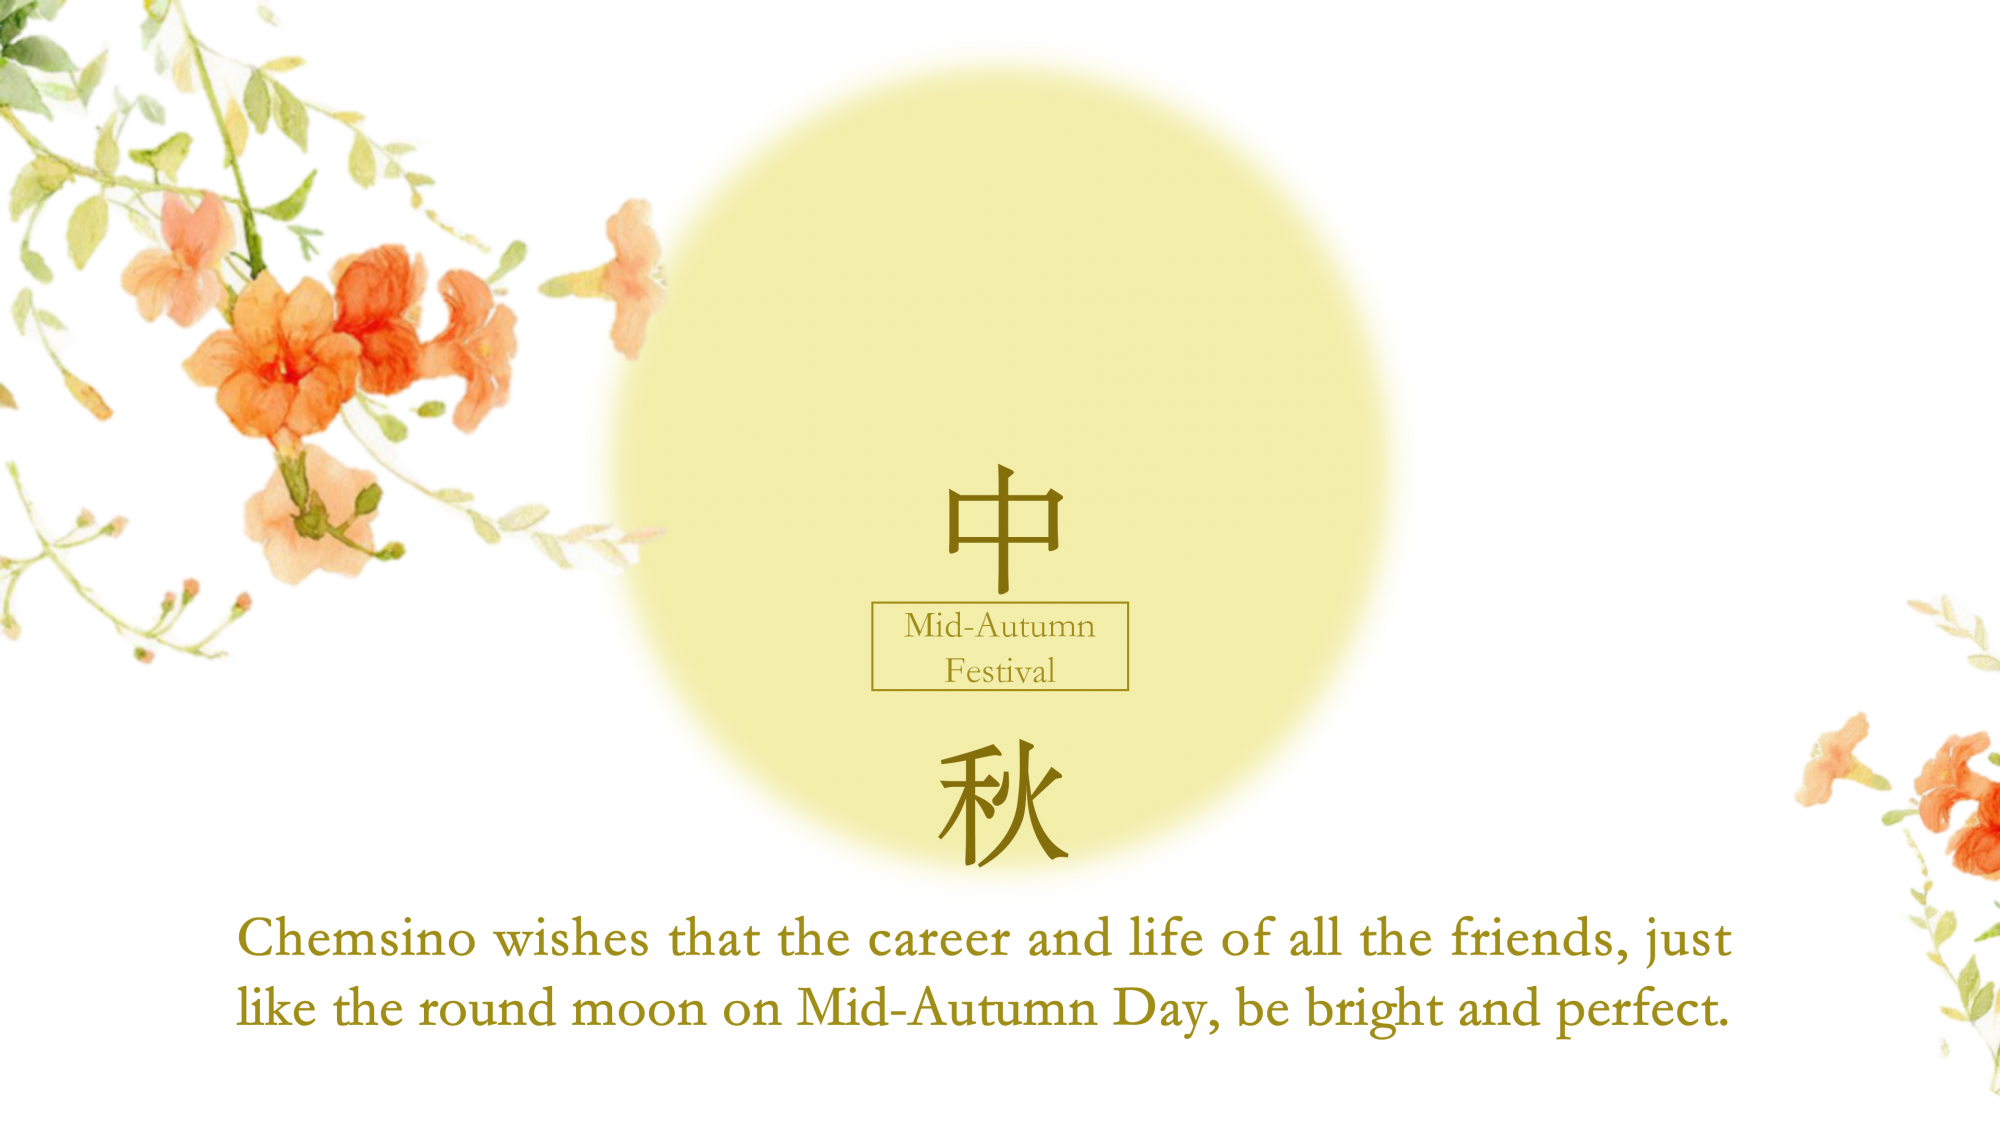 Happy Middle-Autumn Day to all the friends